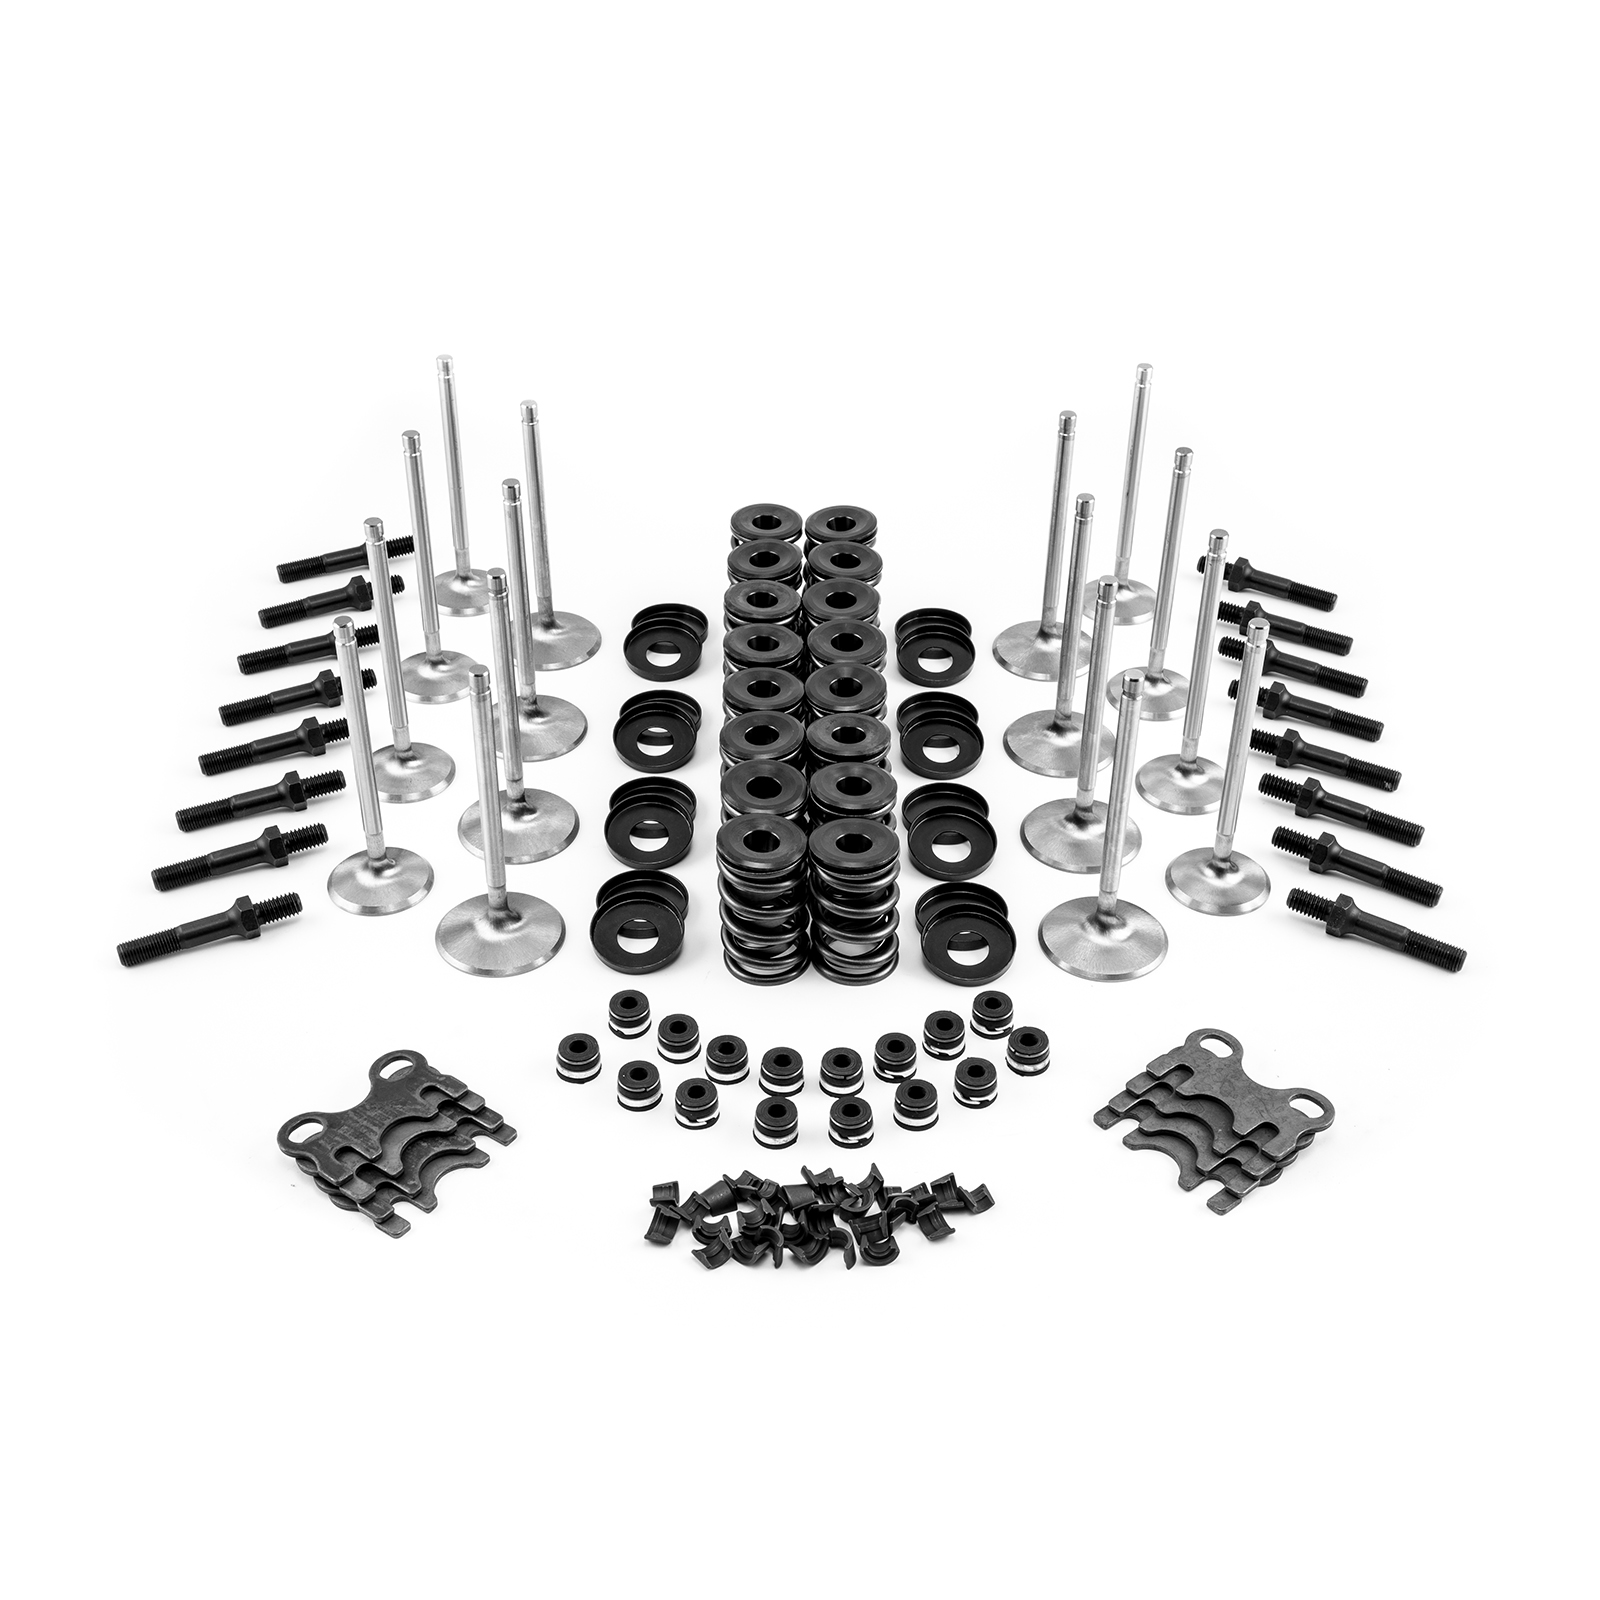 "Head Build Valvetrain Kit Small Block Ford 3/8"" (PC3036-45) or Compatible"